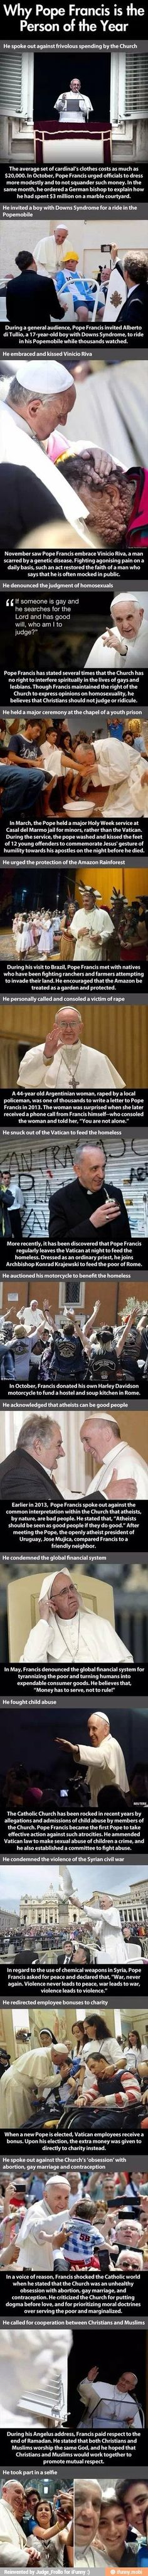 Good Guy Pope Comp. . Why Pope Francis is the Person of the Year he spoke out against frivolous spending byline Church The average set M car...